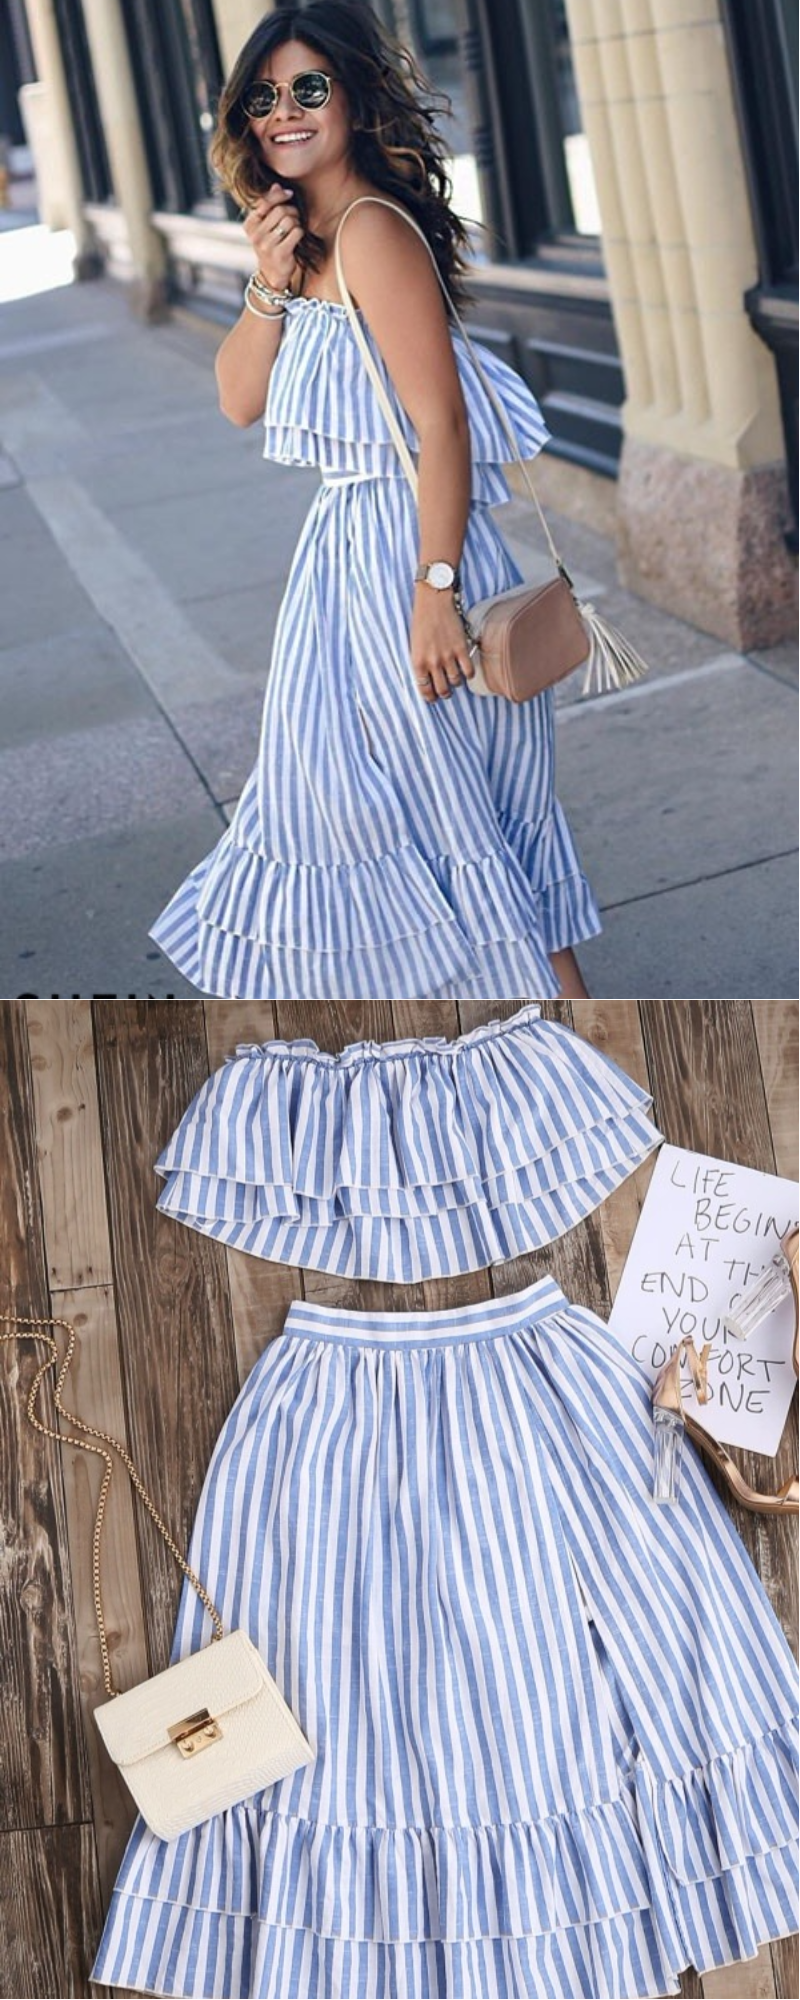 Blue Striped Flyaway Bandeau Top And Ruffle Skort Set - they have womens two  piece outfits and super cute womens skirt sets! This blue striped dress is  ... 37cee34a088f